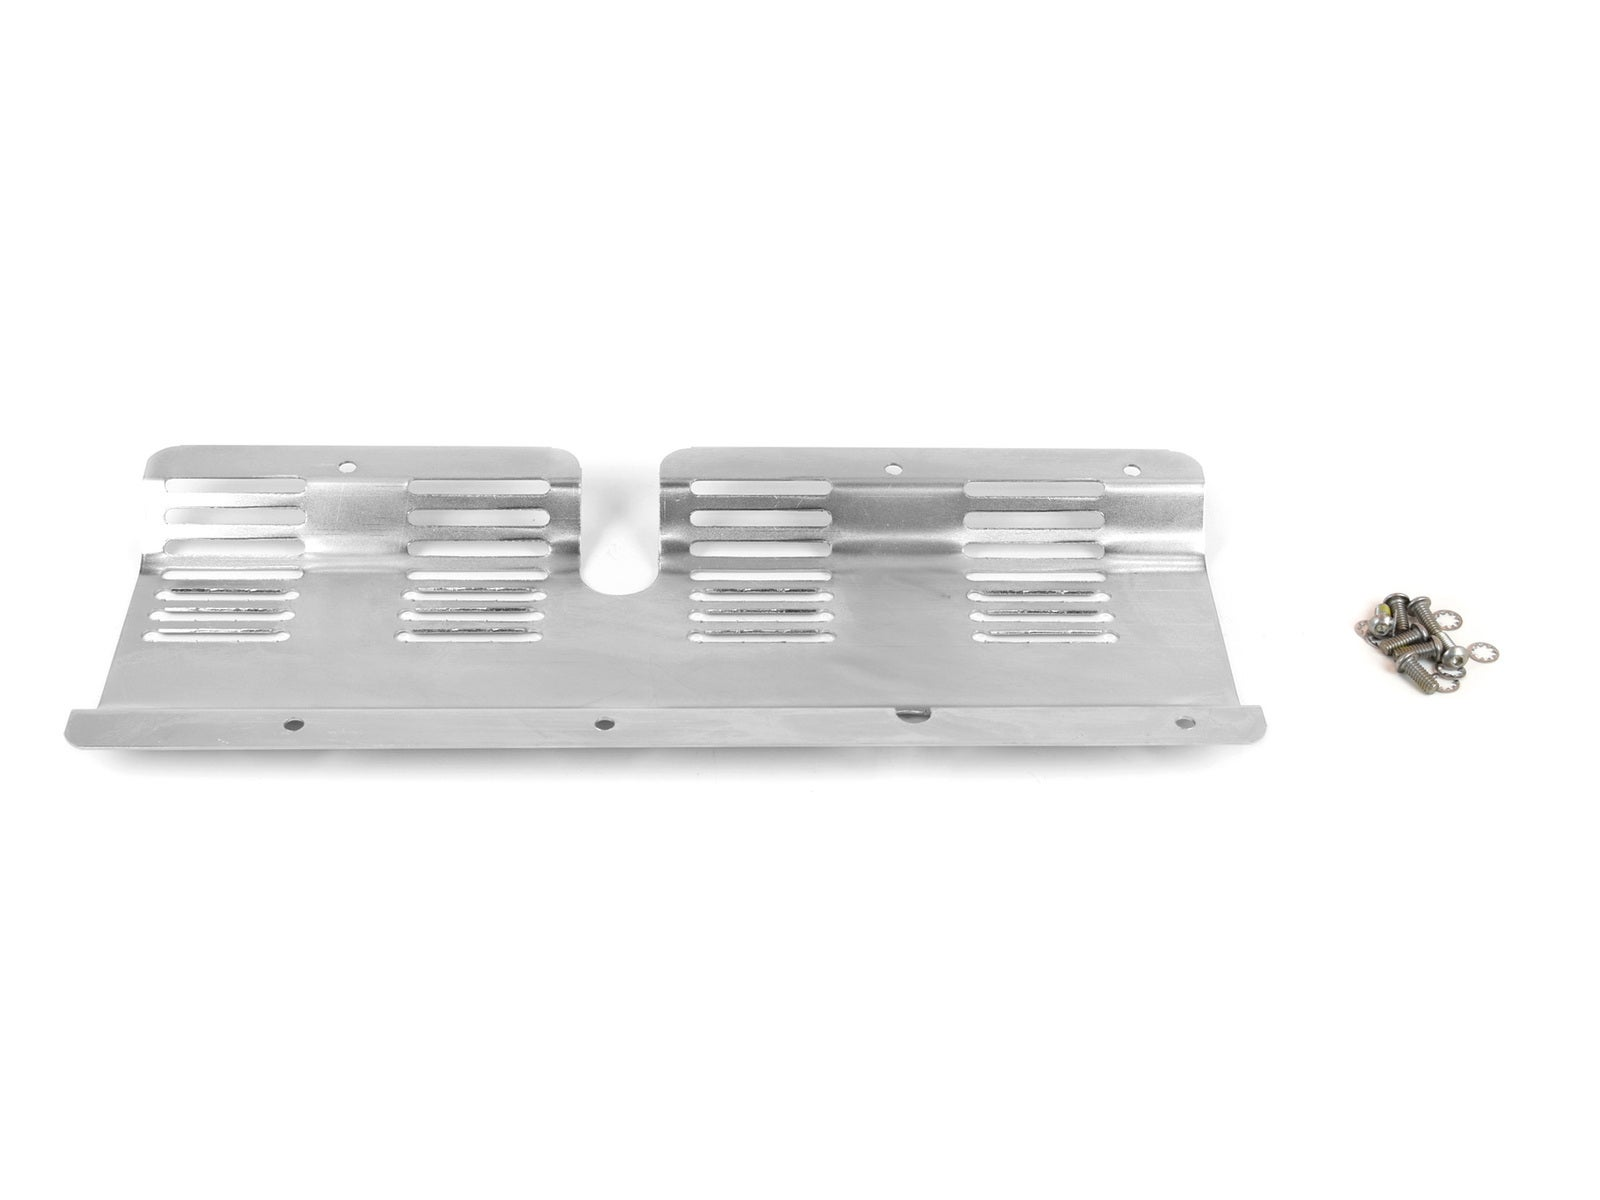 Canton Windage Tray For PN [21-060] Main Support Mercury Cougar Boss 302 1969 CN20960